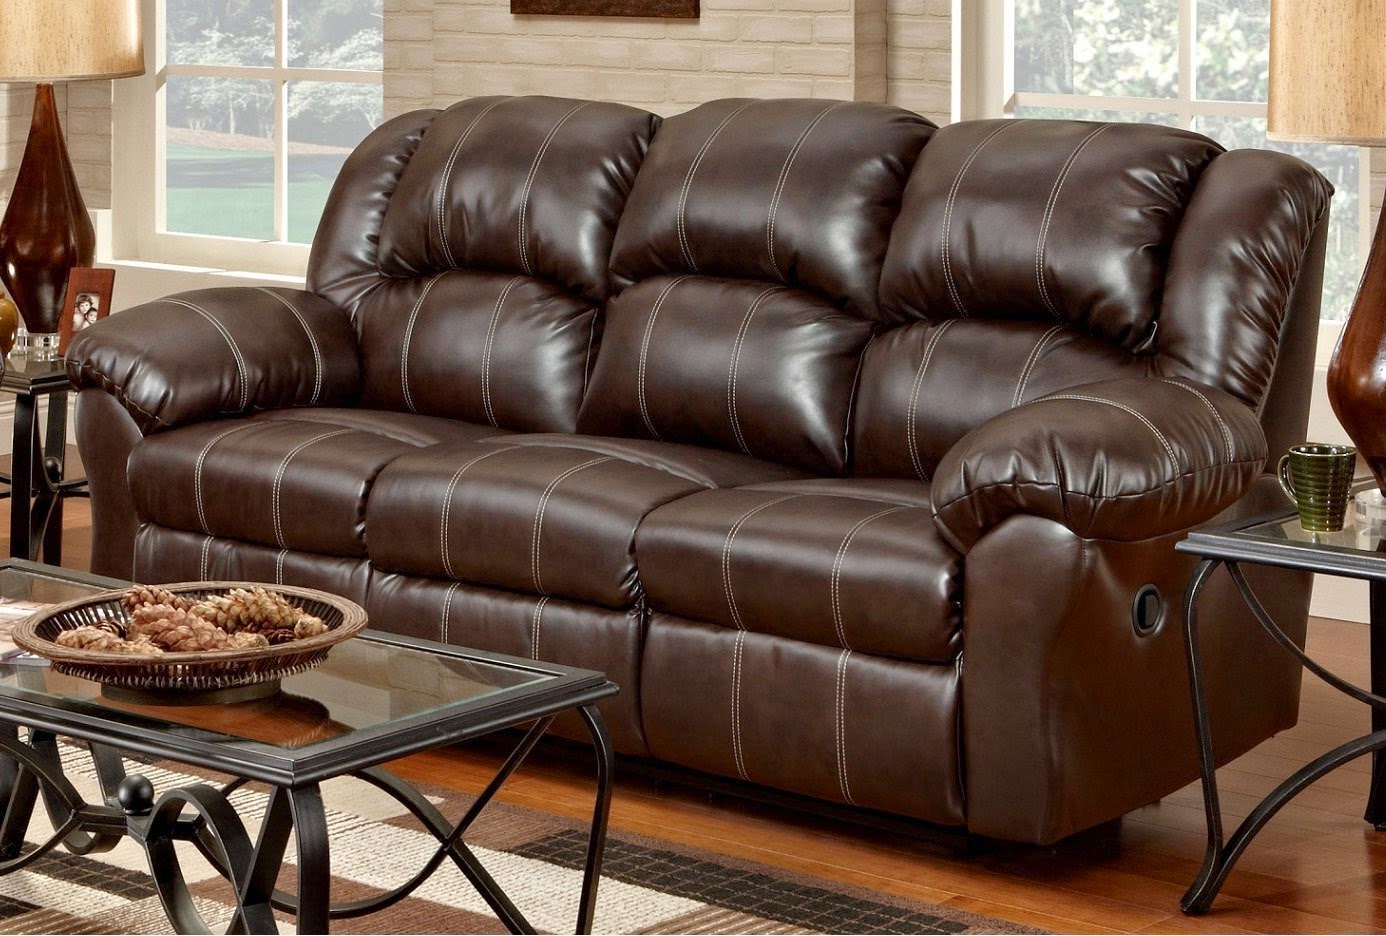 leather vs fabric sofa india free bed blackpool best reclining brands reviews alpha